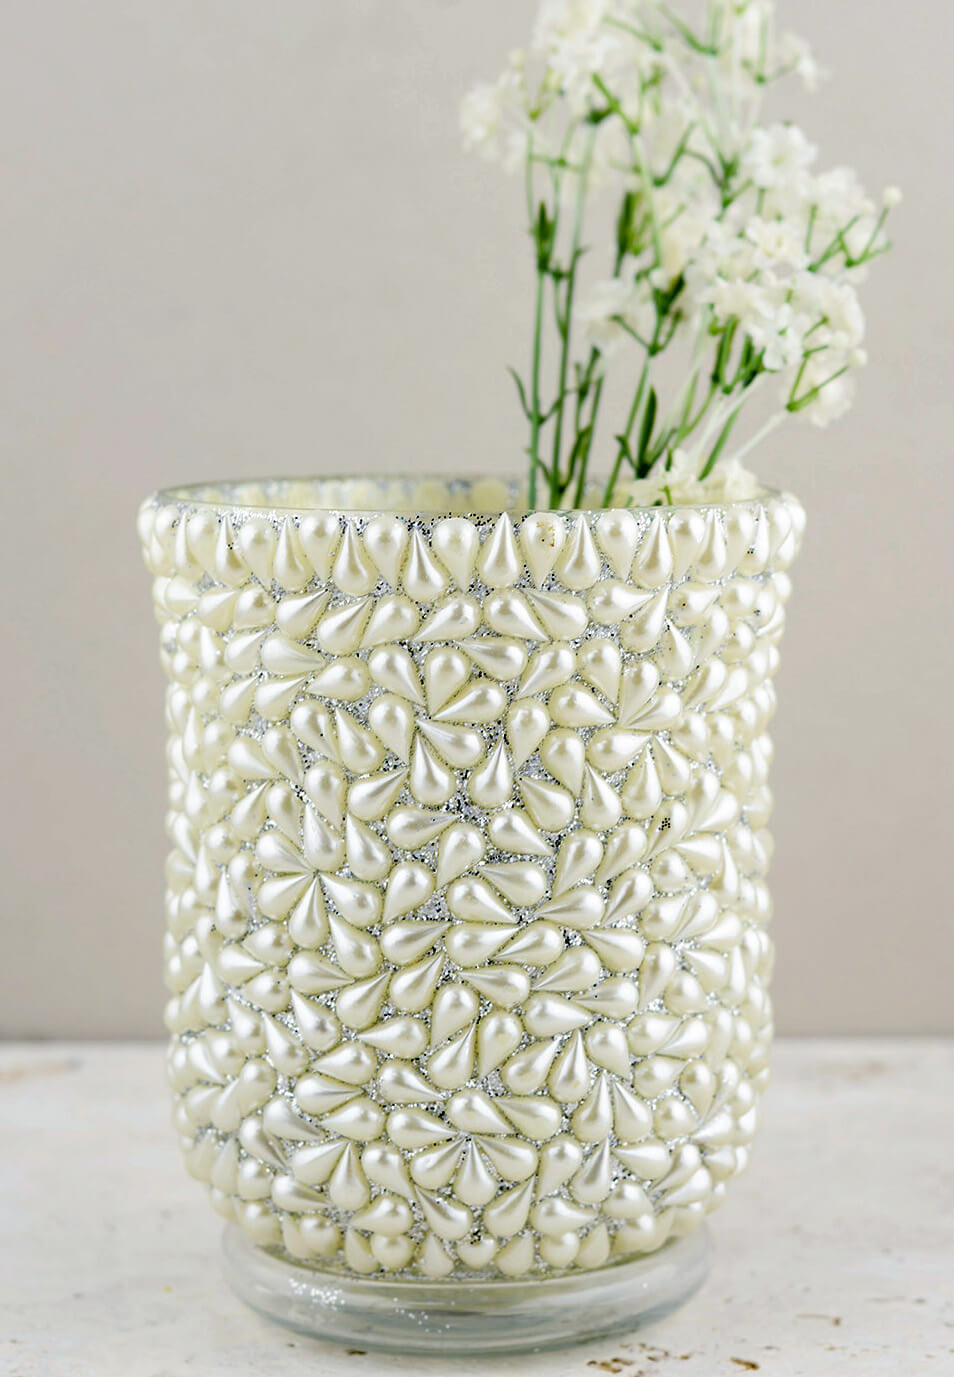 Pearl Beaded Hurricane Vase & Candle Holder 6""